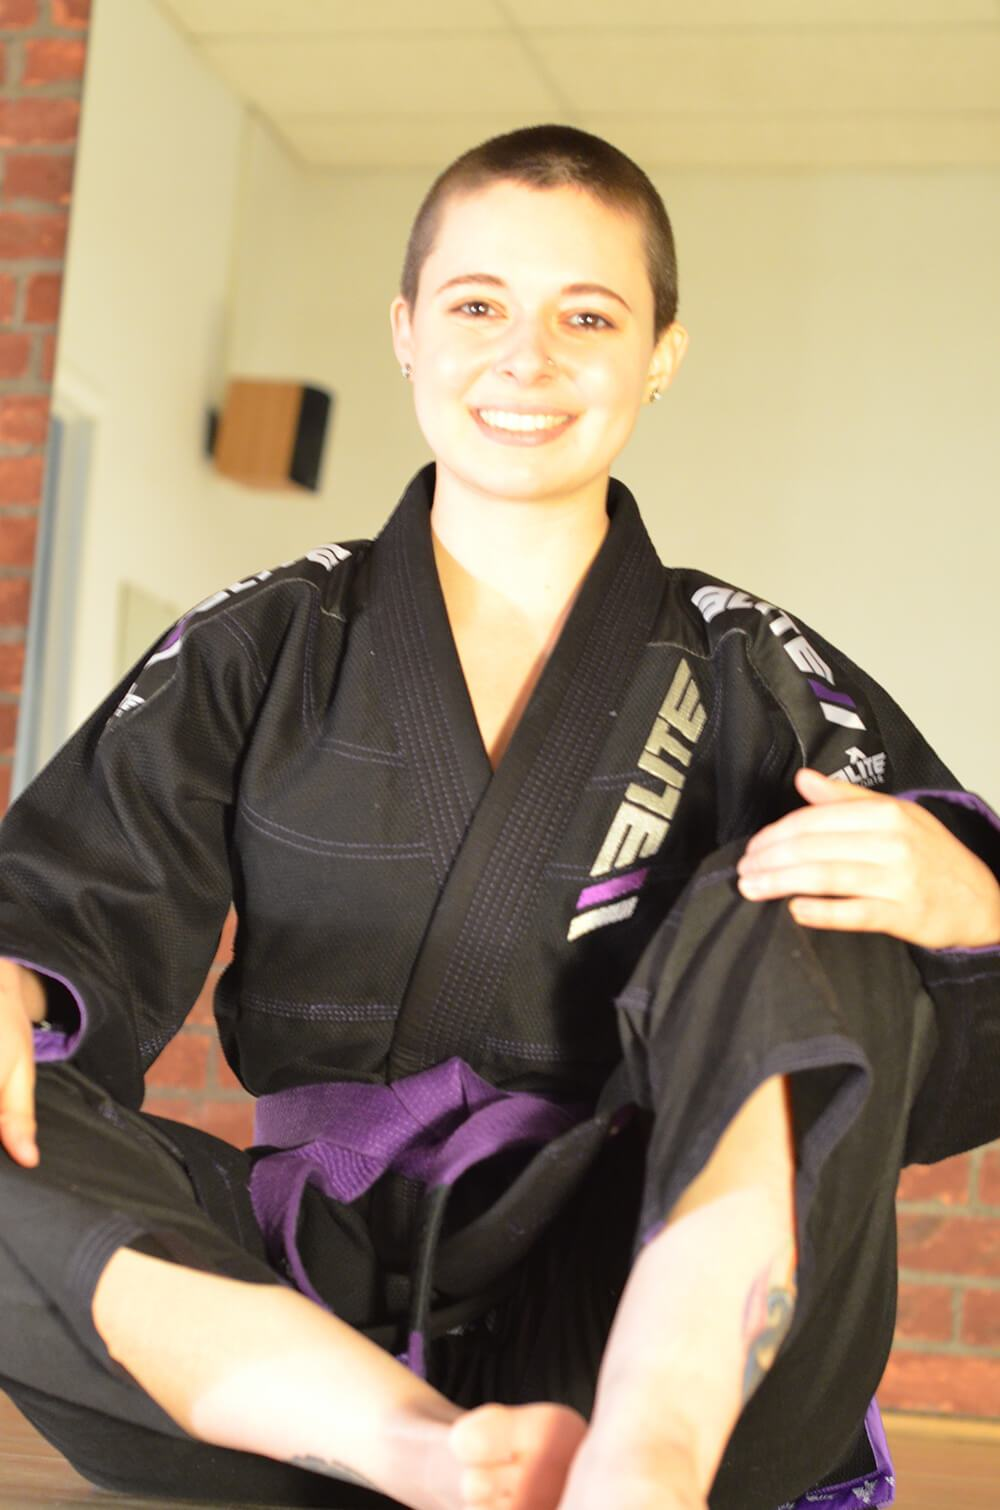 Elite Sports Team Elite Bjj Fighter Emily Dittmar  Image8